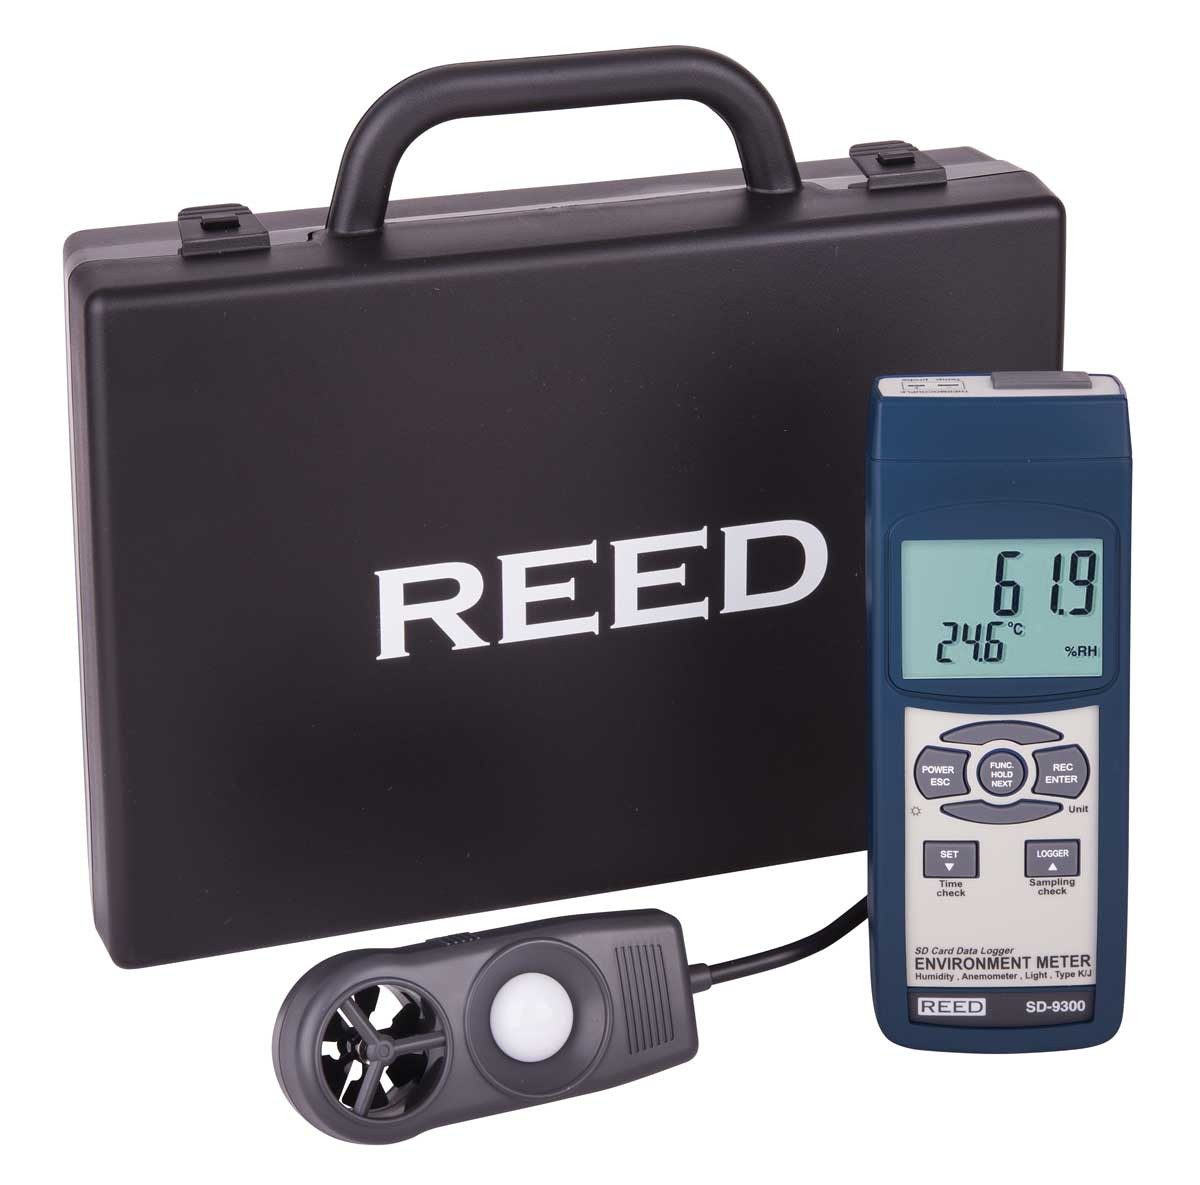 REED SD-9300 SD Series Environmental Meter, Datalogger (Air Velocity/Temp, Light, Ambient Temperature, Humidity)-Included